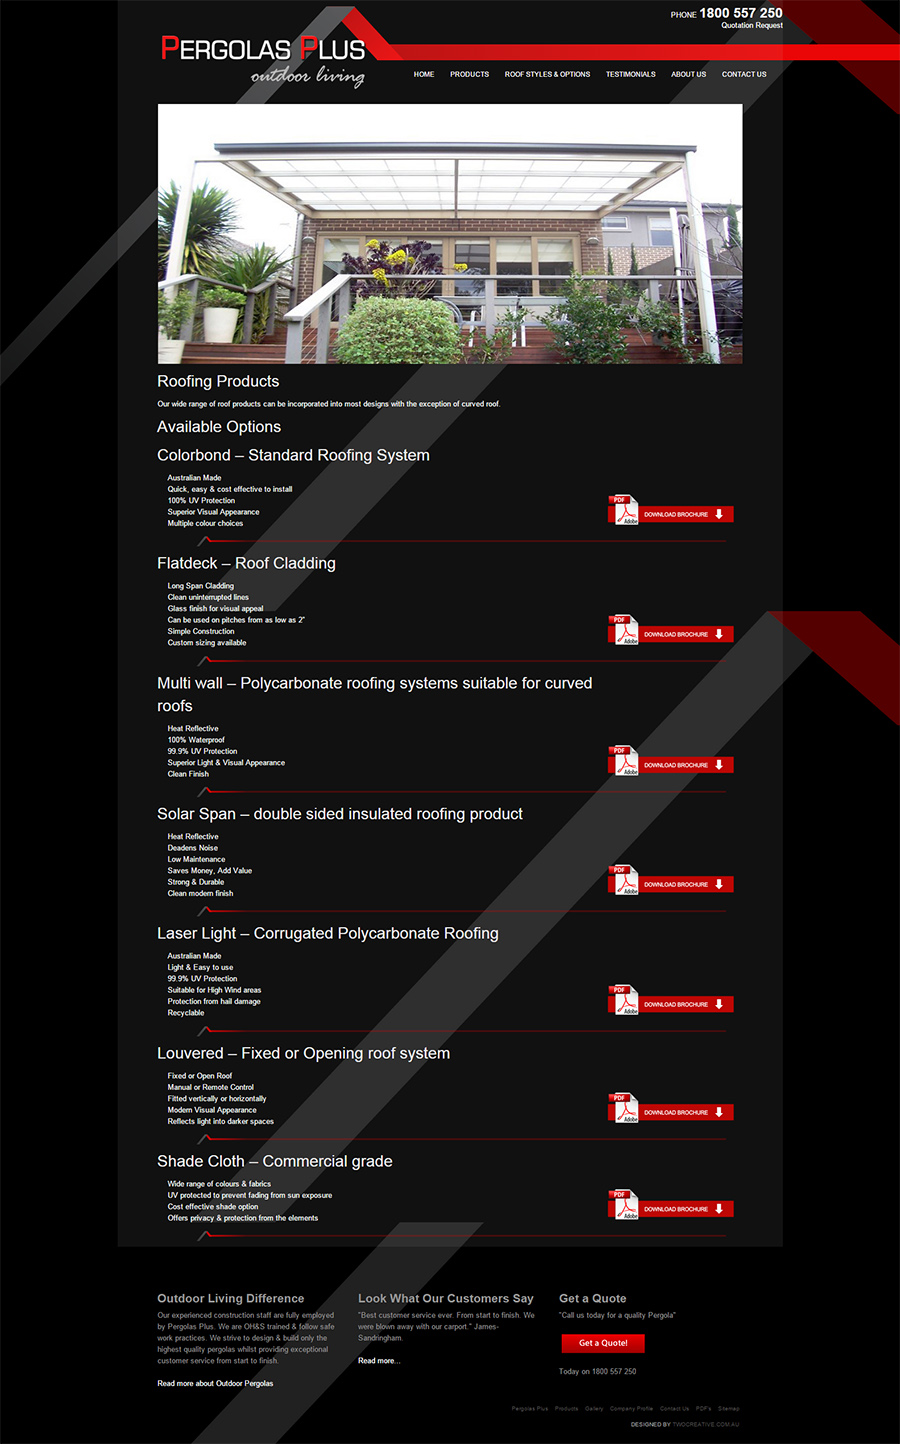 Pergolas Plus Website Screenshot